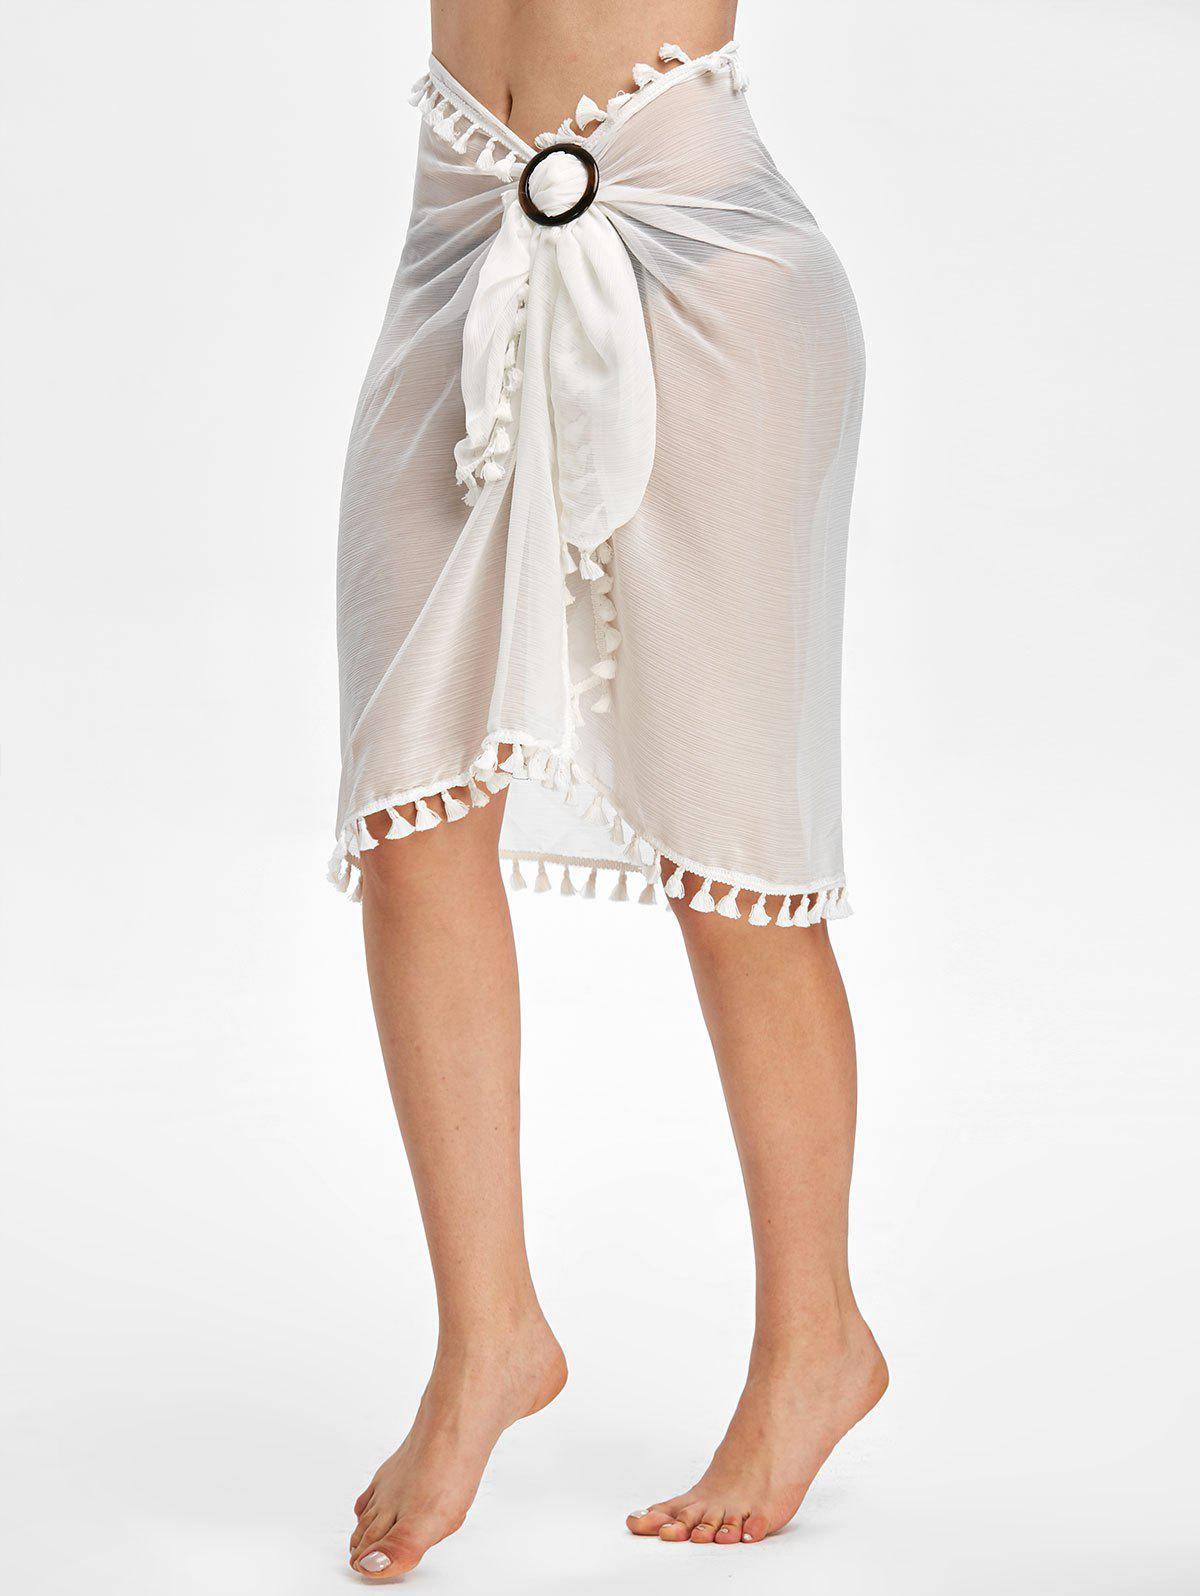 Tassel See Thru Wrap Sarong Cover Up Skirt - WHITE ONE SIZE